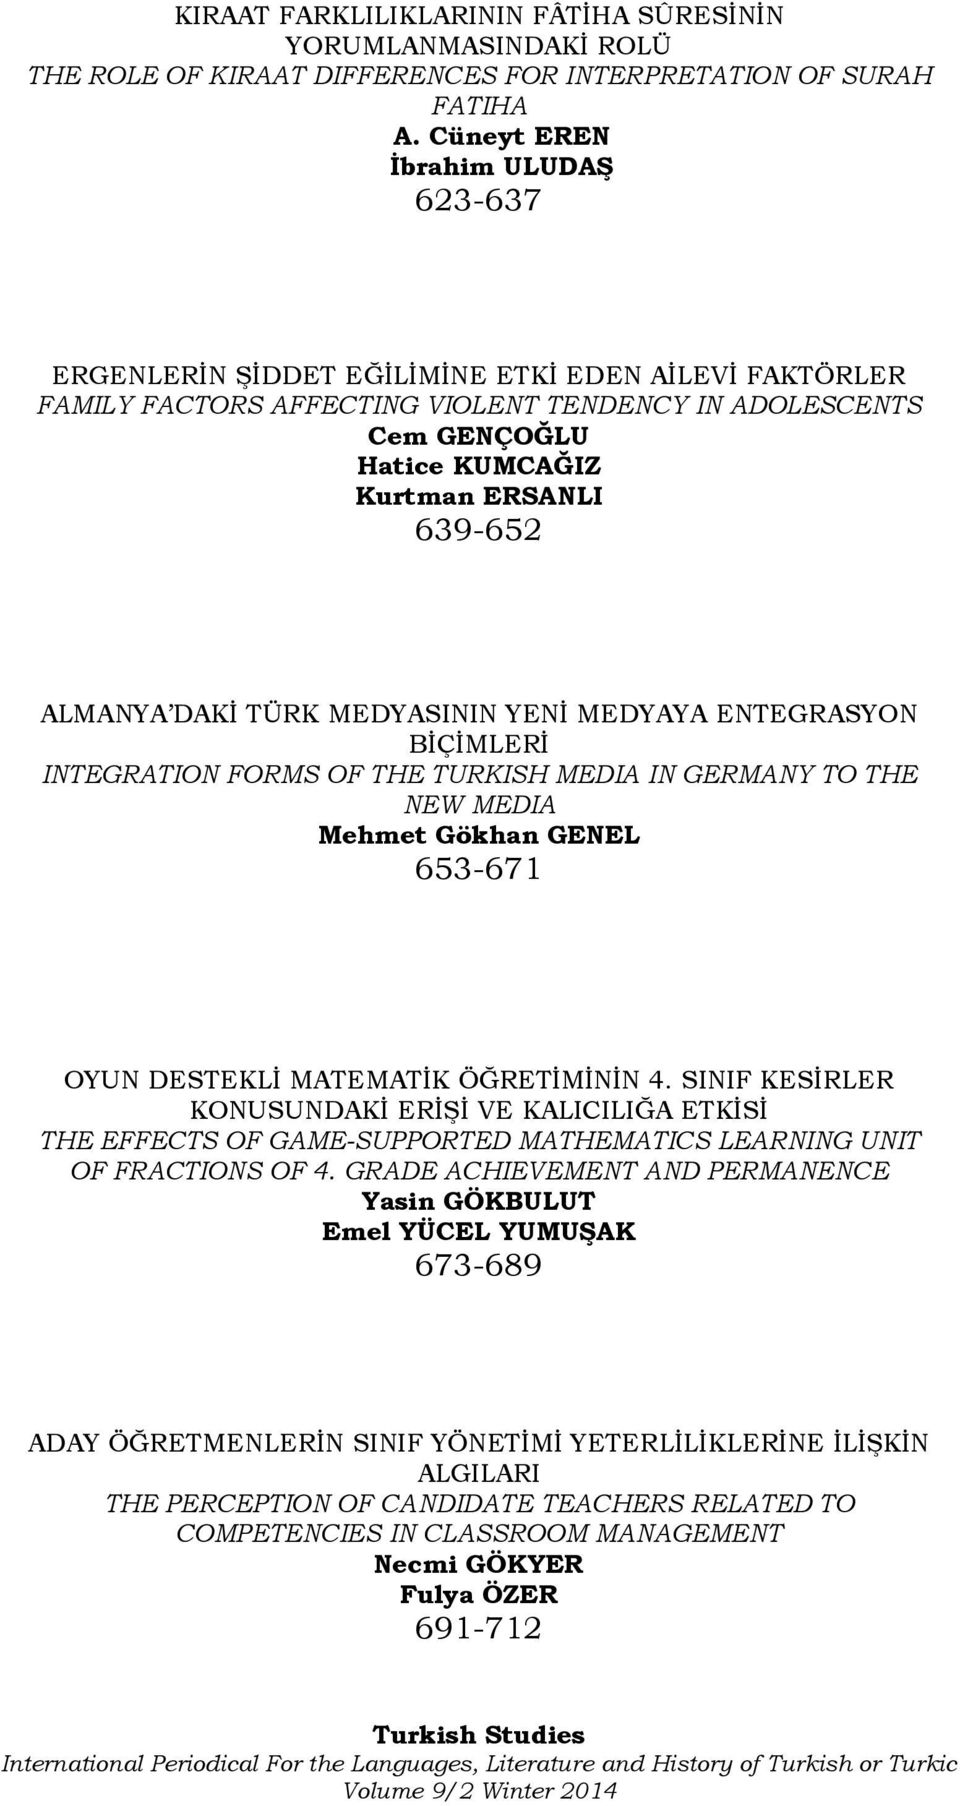 ALMANYA DAKİ TÜRK MEDYASININ YENİ MEDYAYA ENTEGRASYON BİÇİMLERİ INTEGRATION FORMS OF THE TURKISH MEDIA IN GERMANY TO THE NEW MEDIA Mehmet Gökhan GENEL 653-671 OYUN DESTEKLİ MATEMATİK ÖĞRETİMİNİN 4.